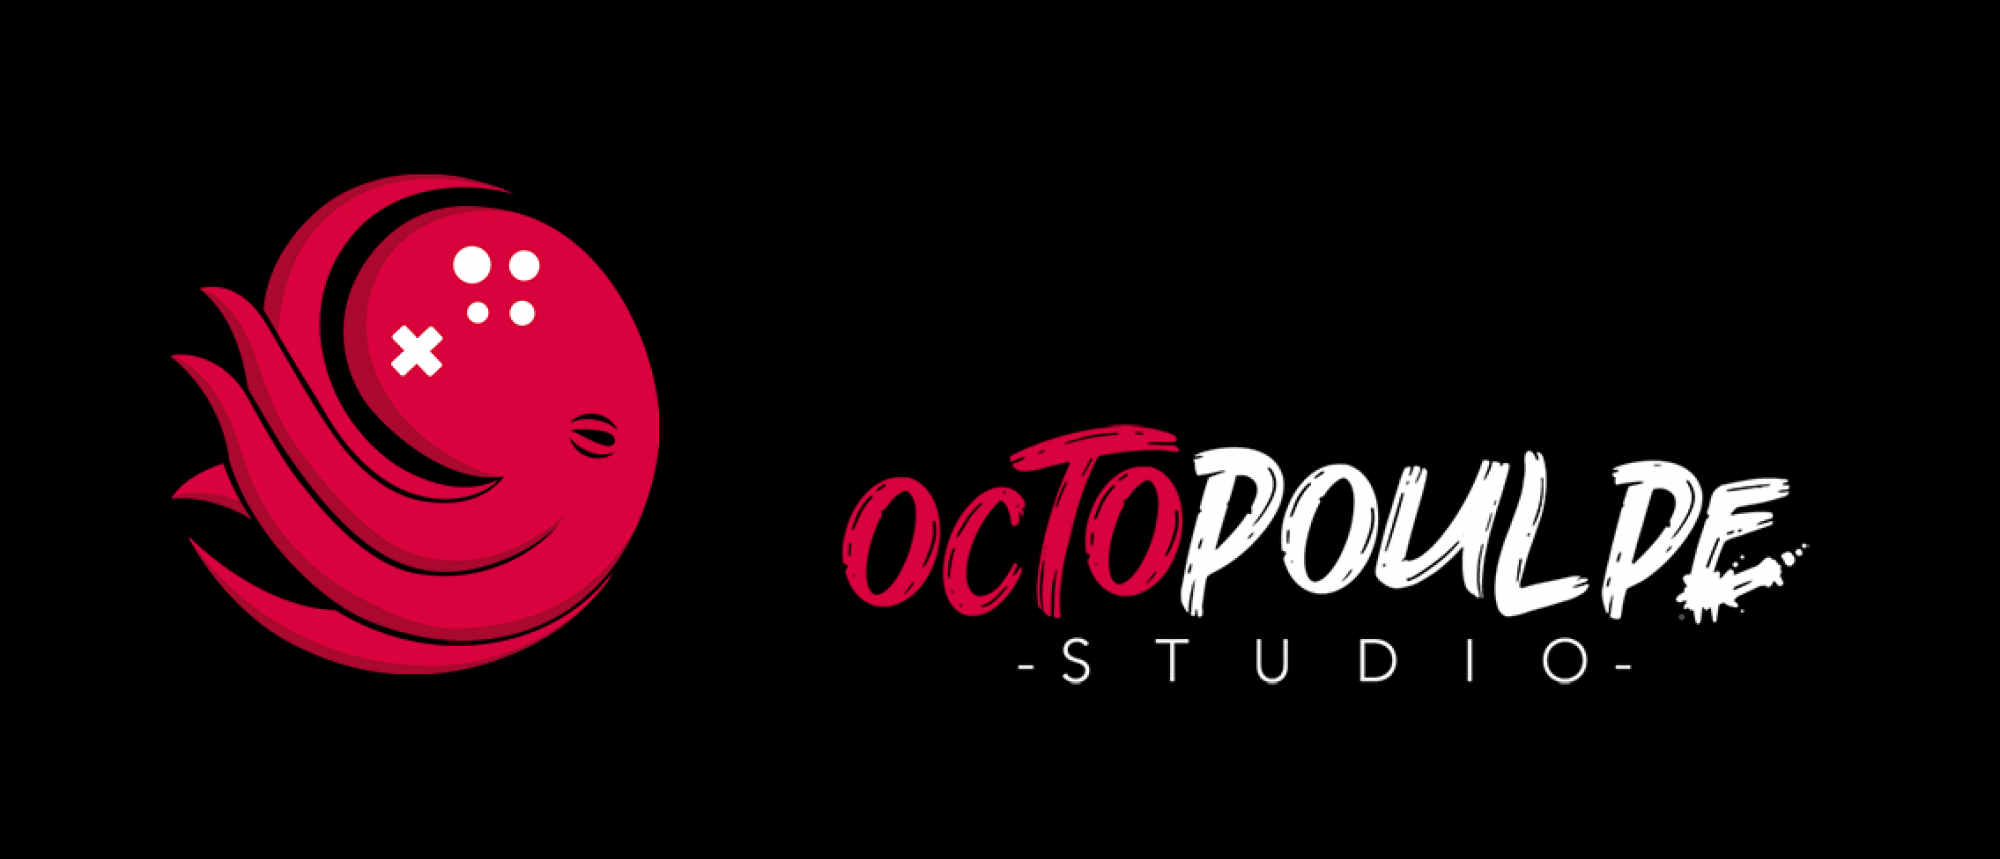 OctoPoulpe Studio